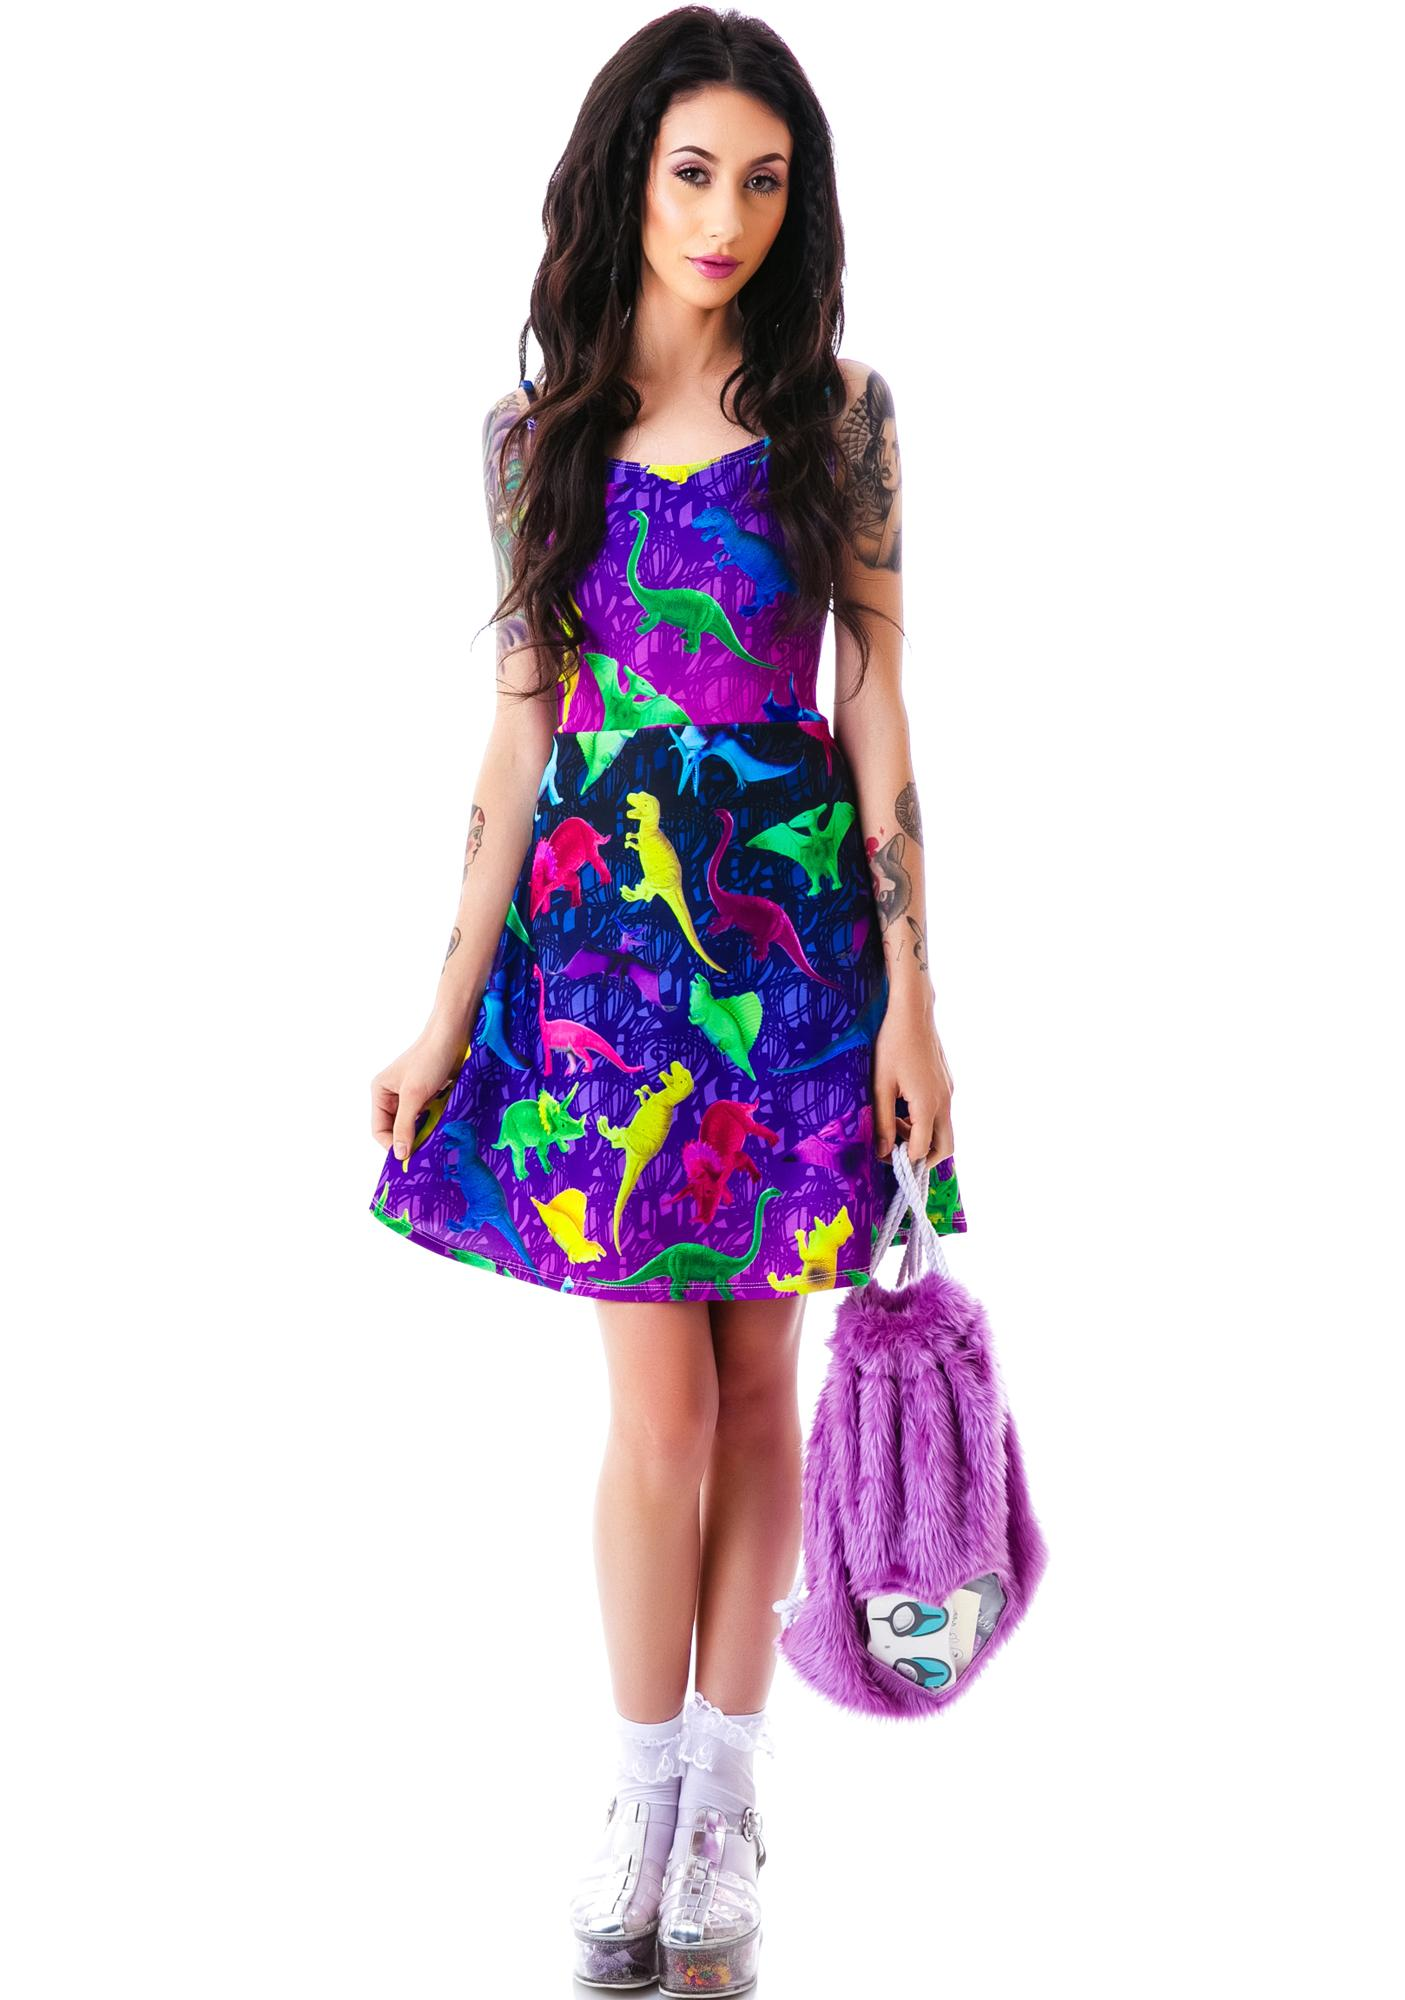 Japan L.A. Japan L.A. Toy Dinos Strappy Dress